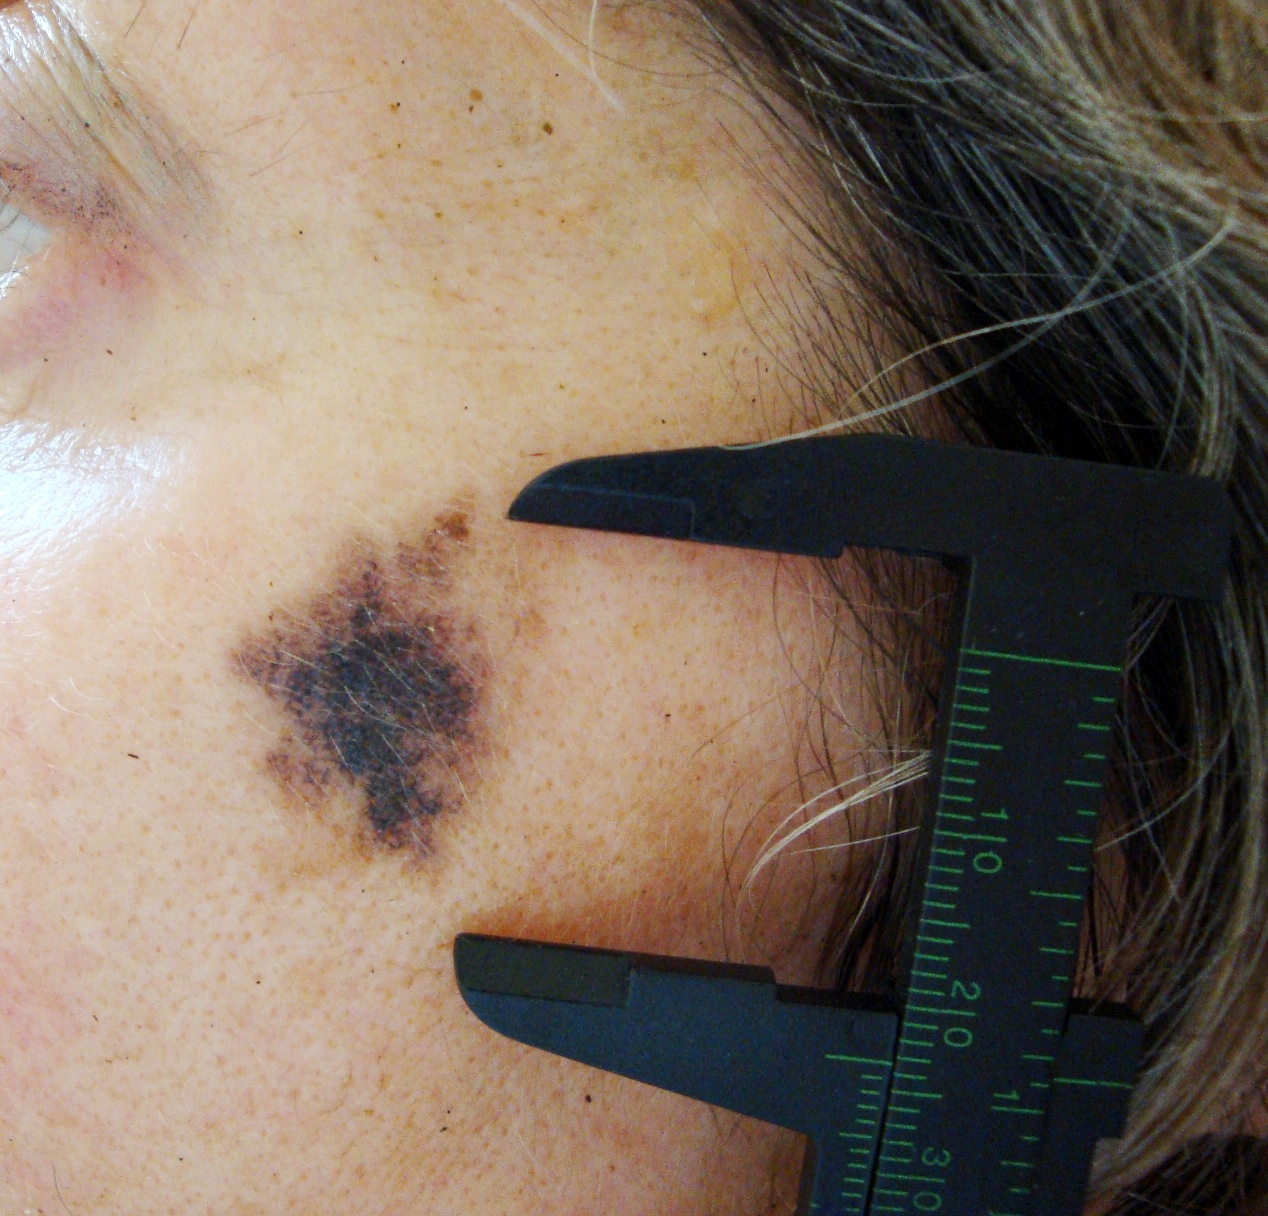 Birthmark growth may be a sign of melanoma